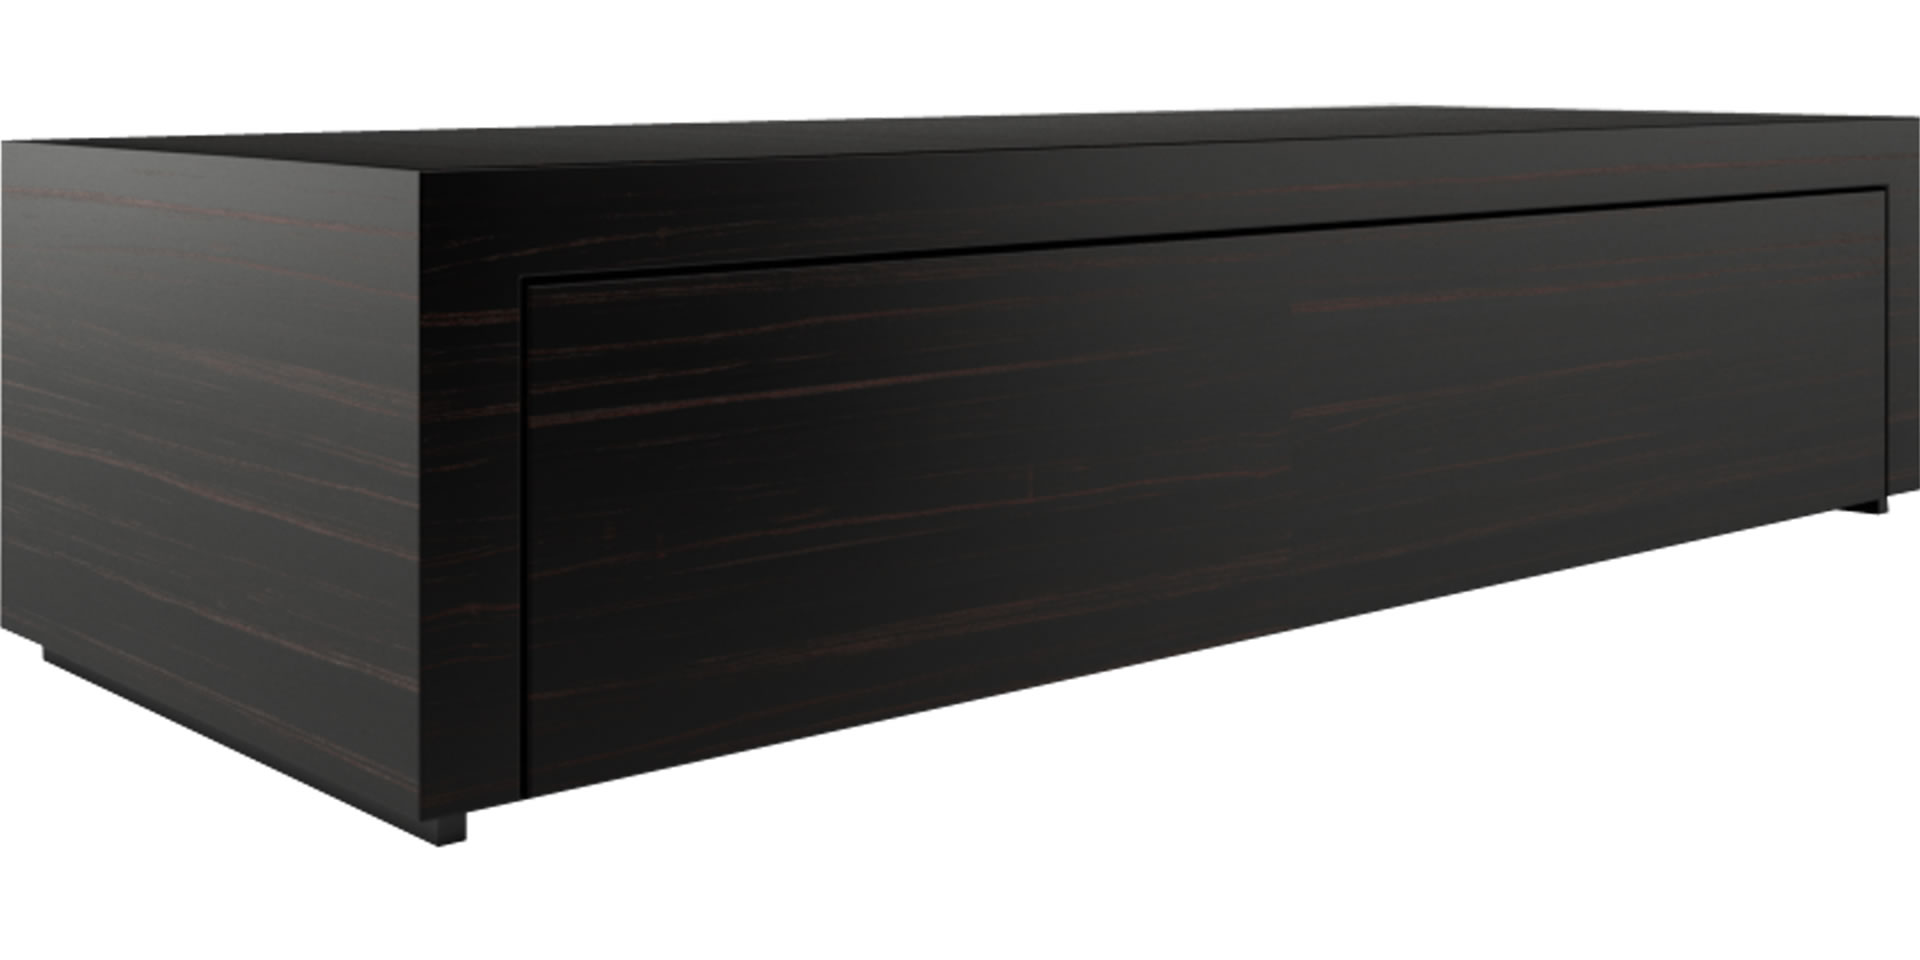 Kommode Offen Sideboard Repositio – Puristisches Design-sideboard Von